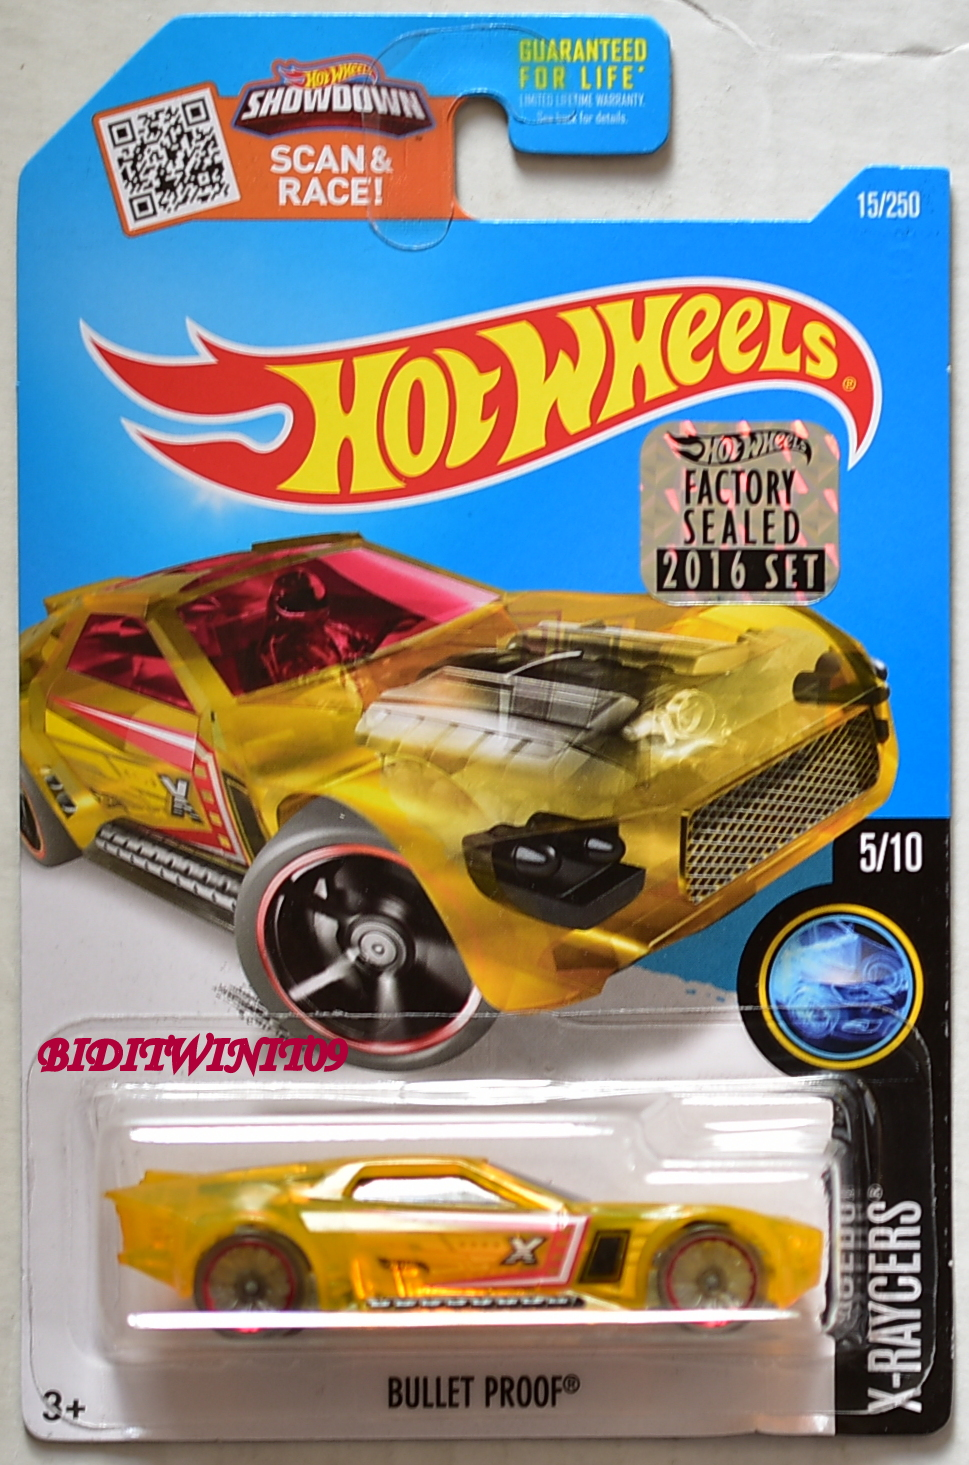 HOT WHEELS 2016 X-RAYCERS BULLET PROOF #5/10 GOLD FACTORY SEALED